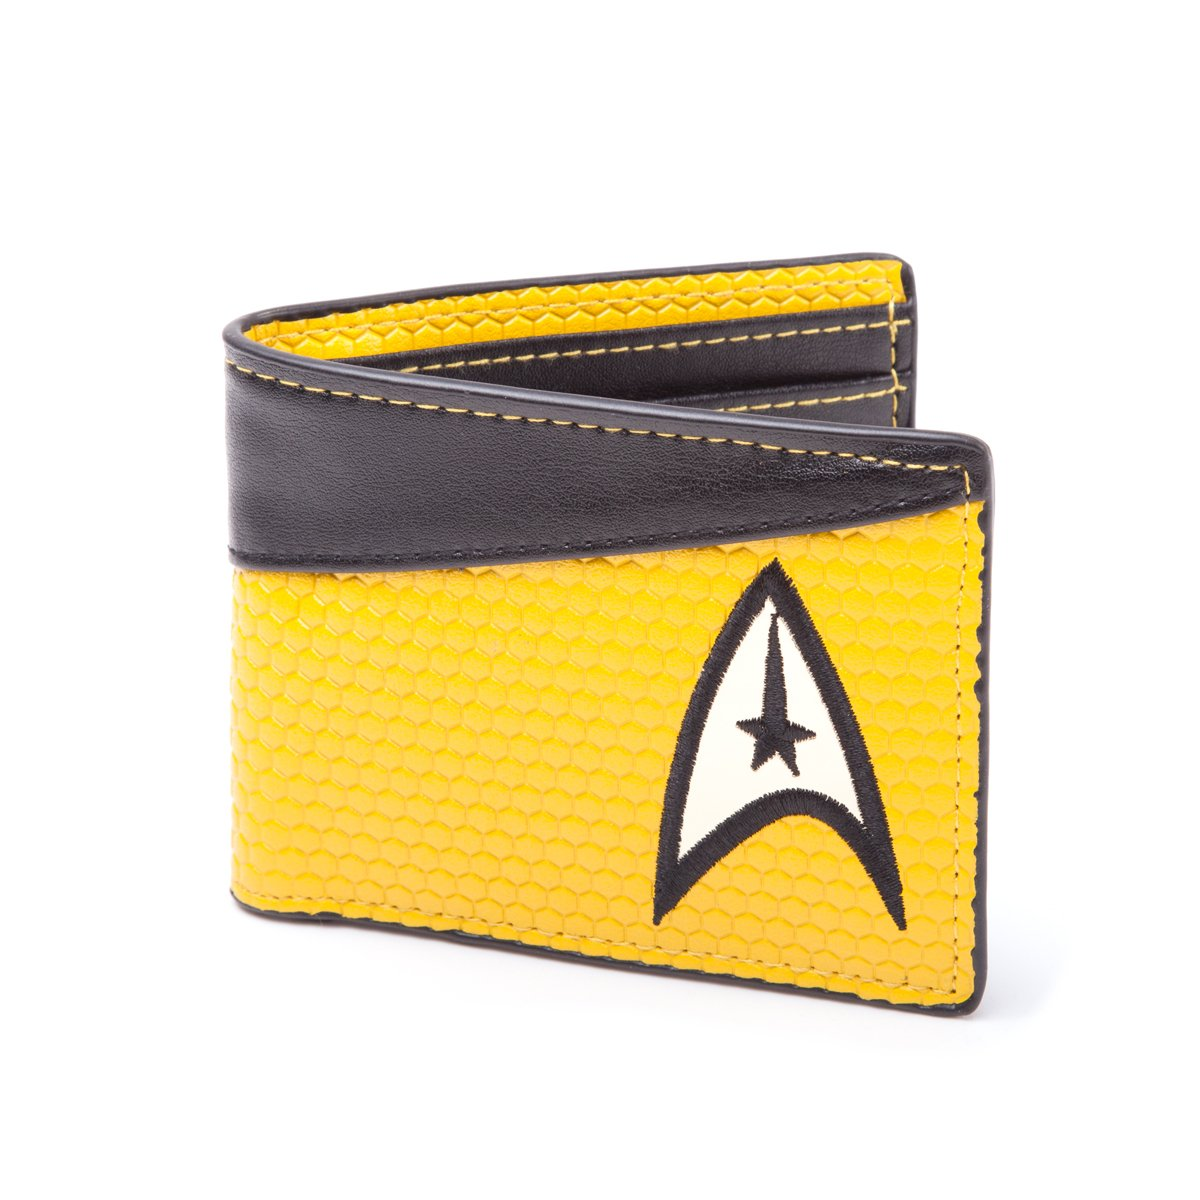 Star Trek Monedero MW15ZVSTA Negro